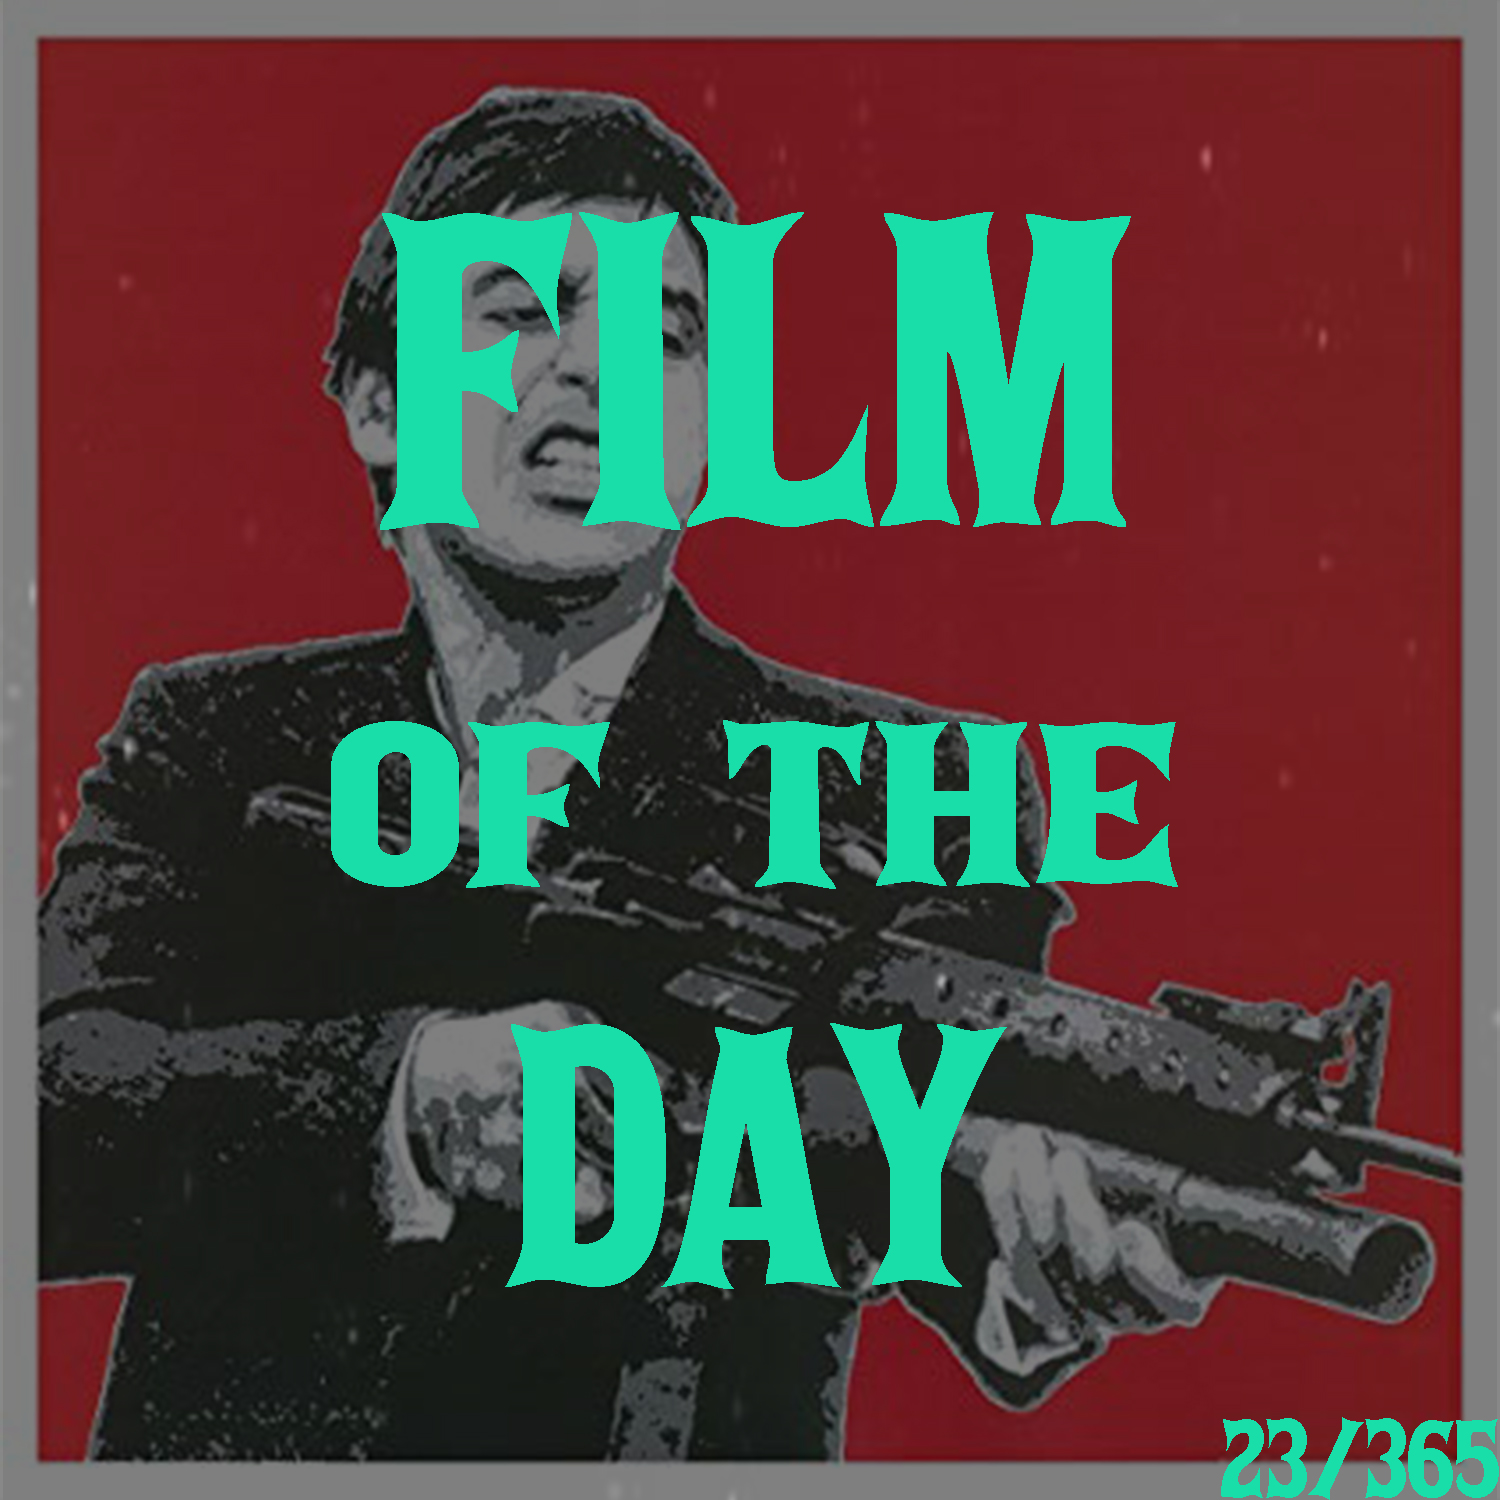 """Scarface     (Brian De Palma)   """"Say hello to my little friend!"""" Possibly De Palma's most popular film in mainstream terms,  Scarface  is one of the more exhilarating films in the gangster genre as it turns Howard Hawks' 1932 film into a modern re-adaptation in the depths of 1980's Miami.  *FILM OF THE WEEK"""